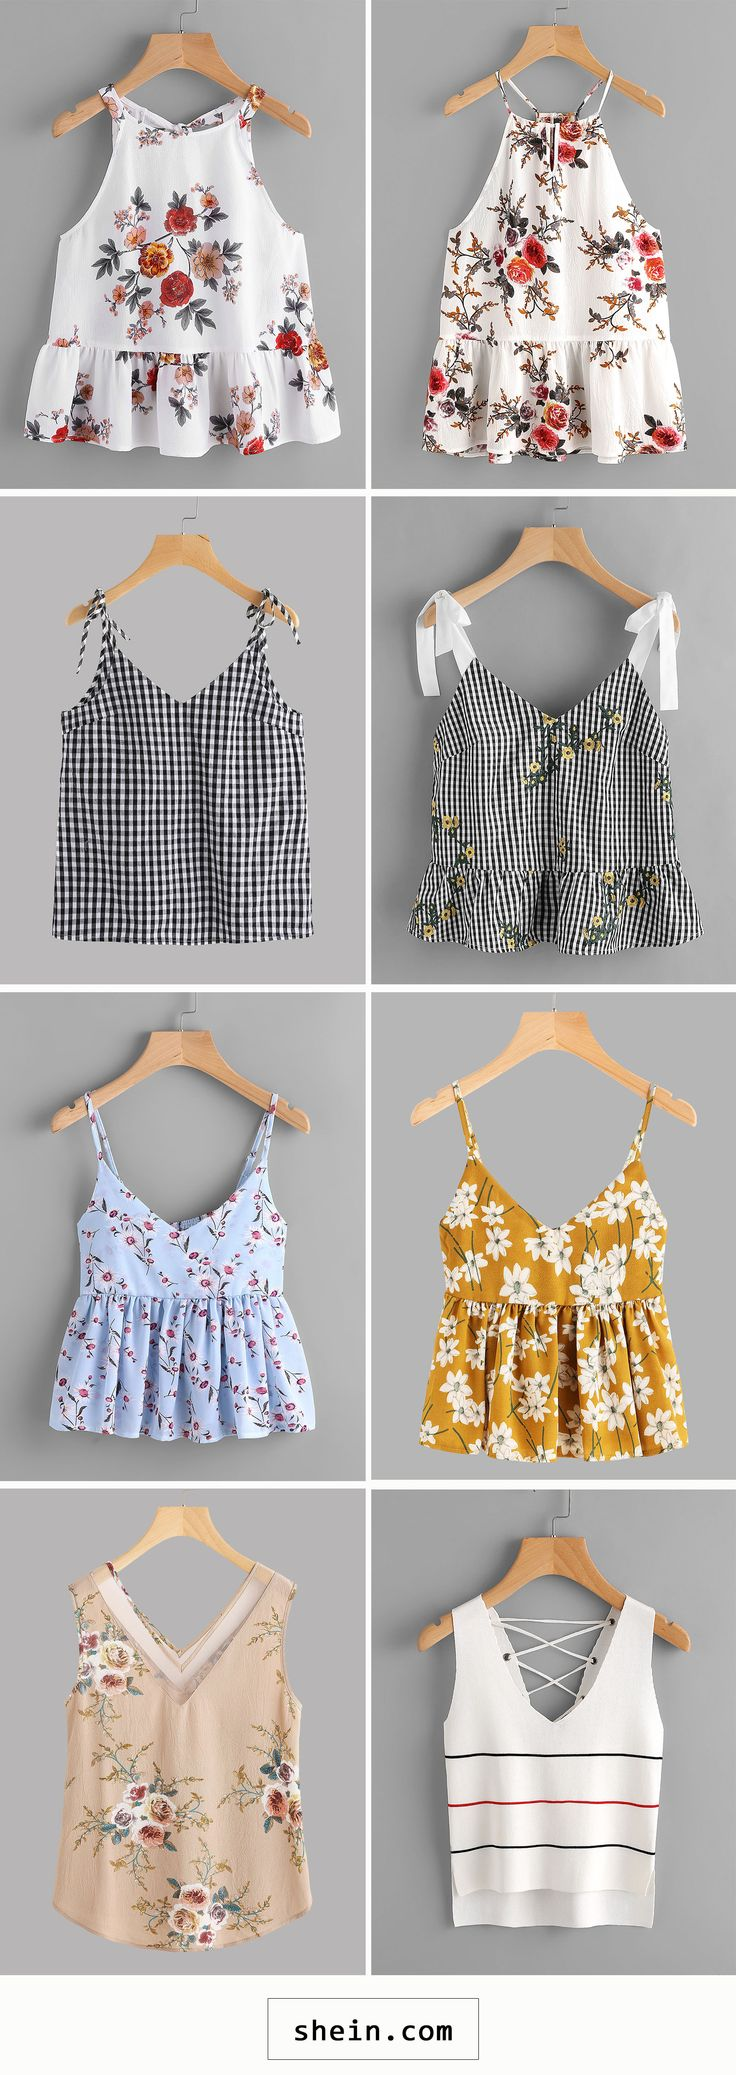 Cami tops start at $5